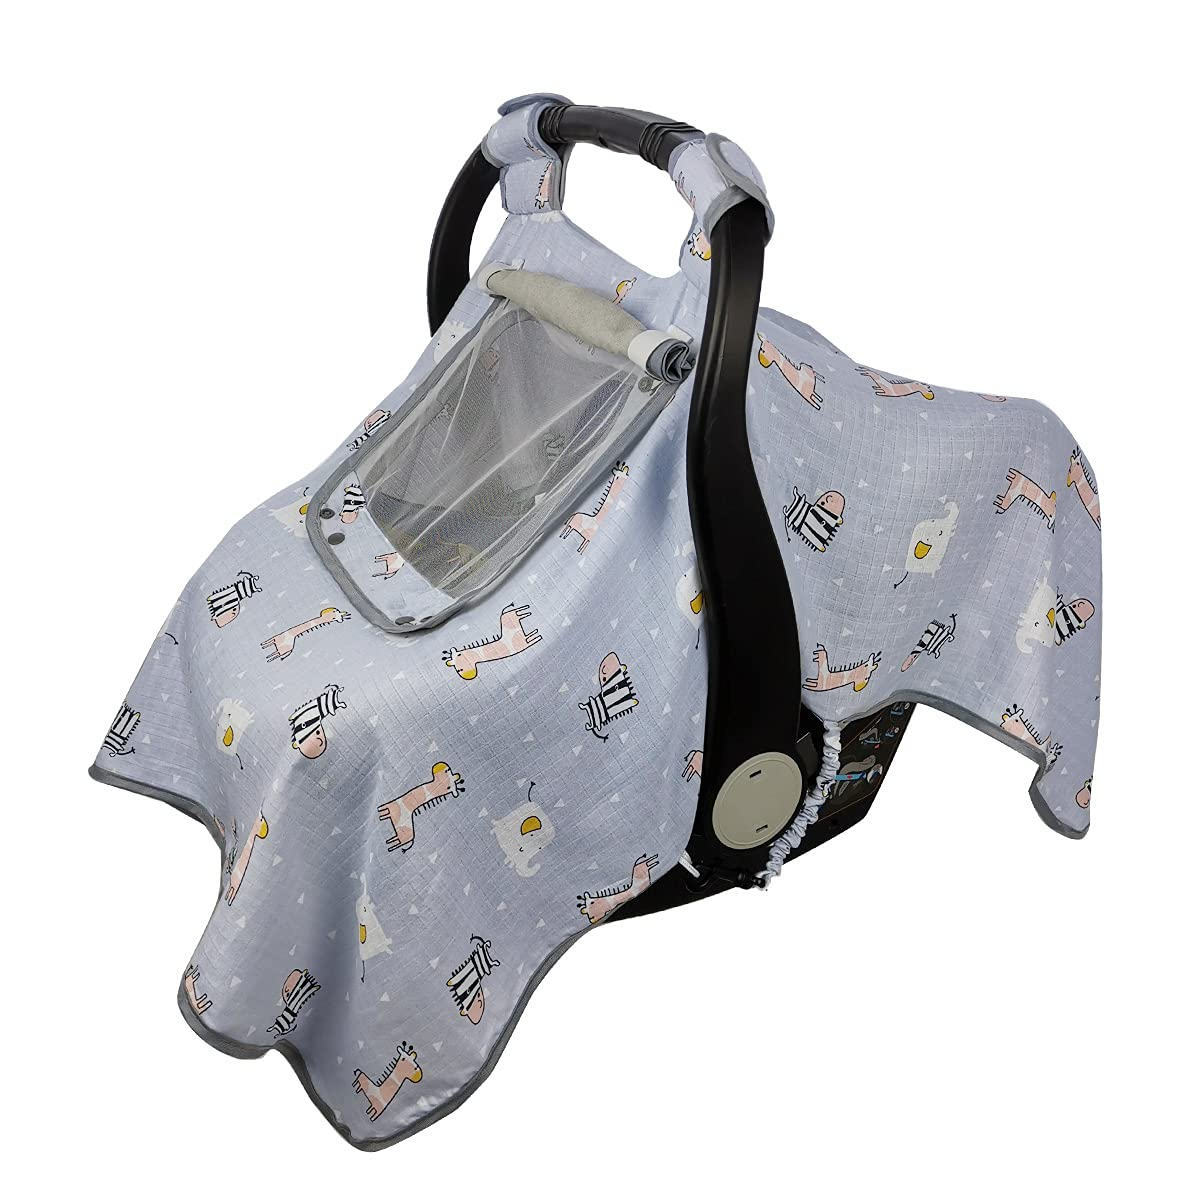 All items free shipping ICOPUCA Car Super-cheap seat Covers for Kick-Proof Gir Cover carseat Babies